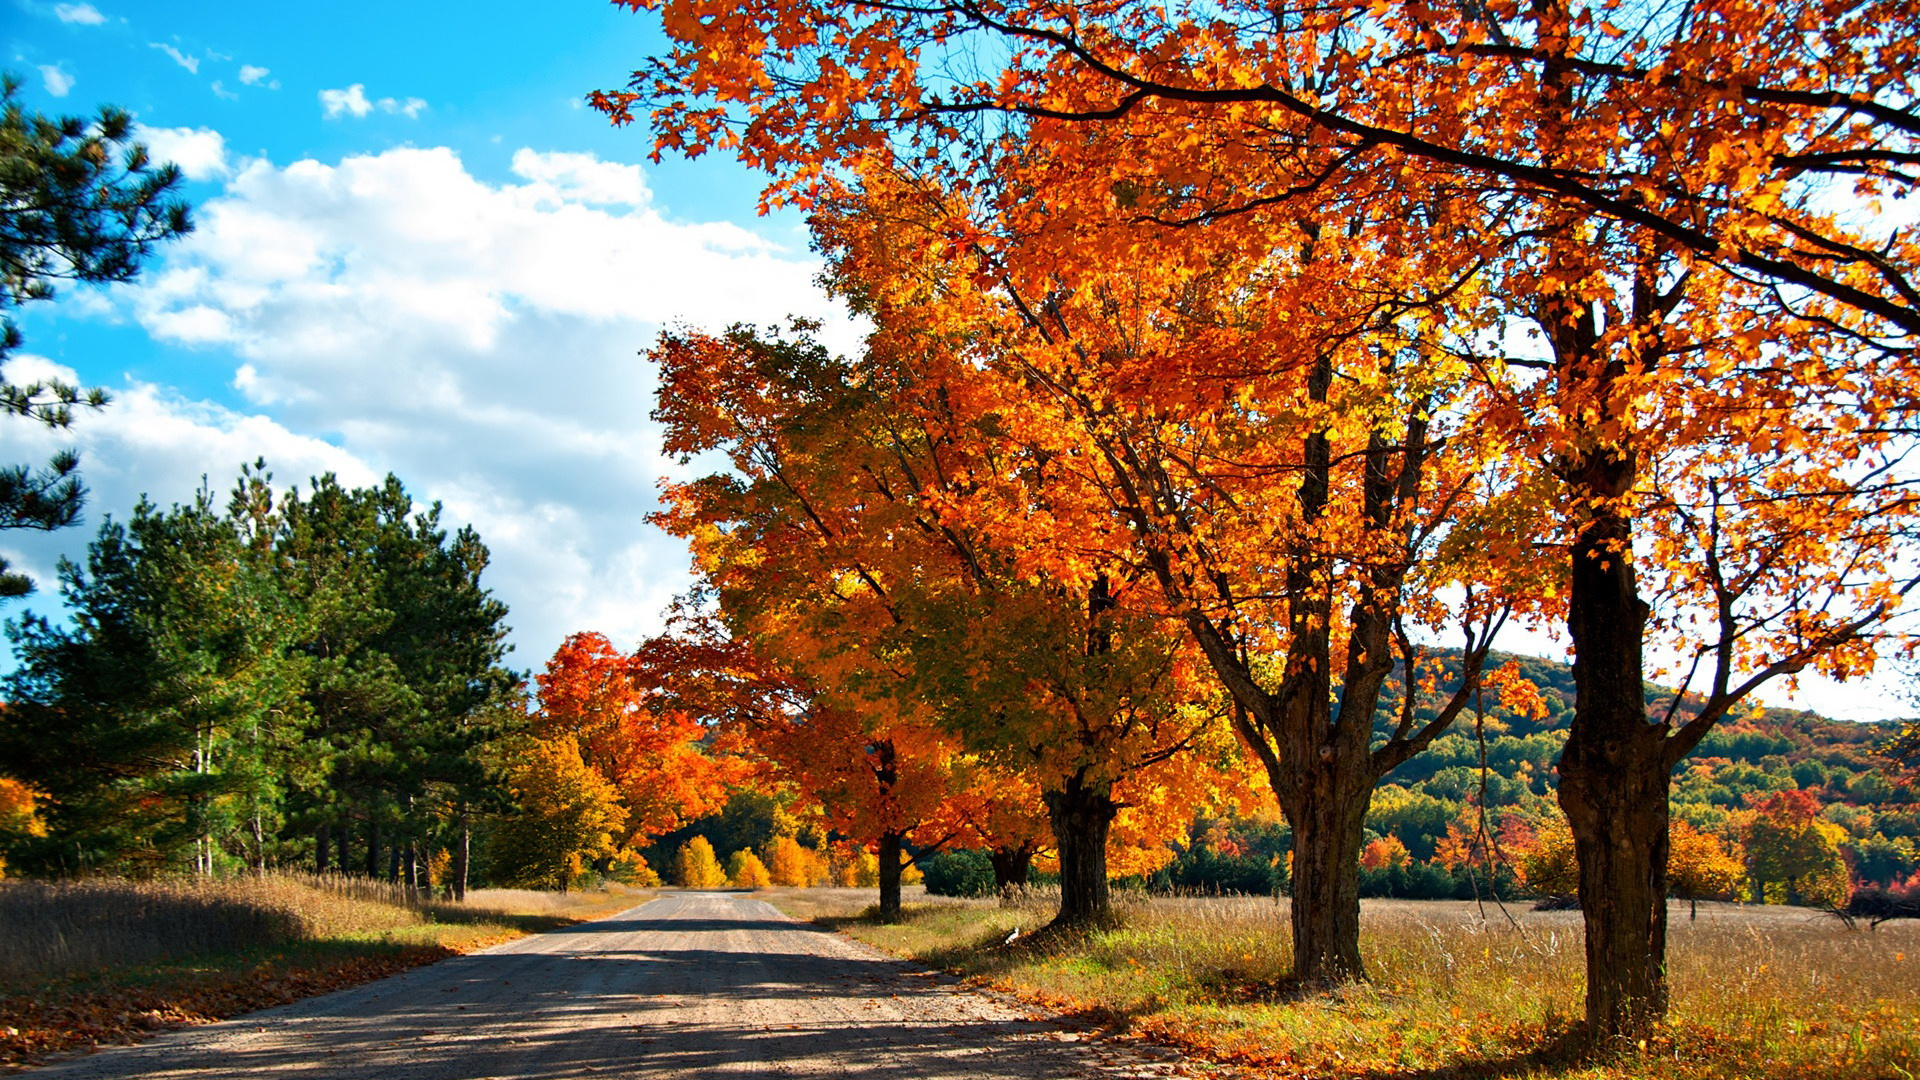 Free Download Natural Scenery Picture - Tall Trees with Red Leaves, the Blue Sky, Shades All Over the Road 1920X1080 free wallpaper download